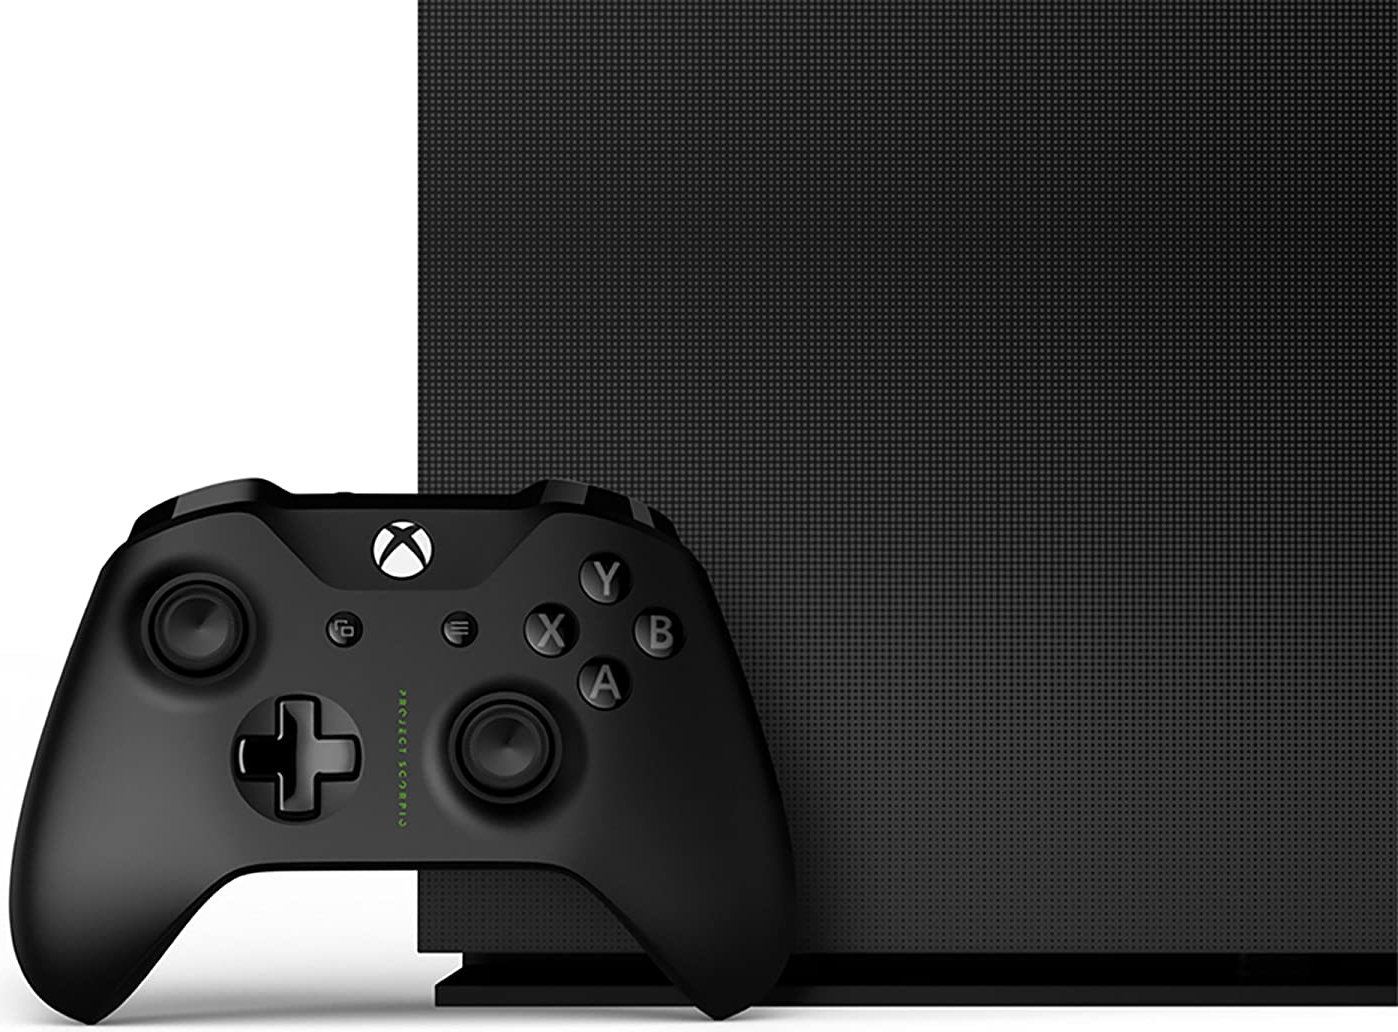 Quelle: Amazon - Xbox One X Konsole 1 TB - Project Scorpio Edition